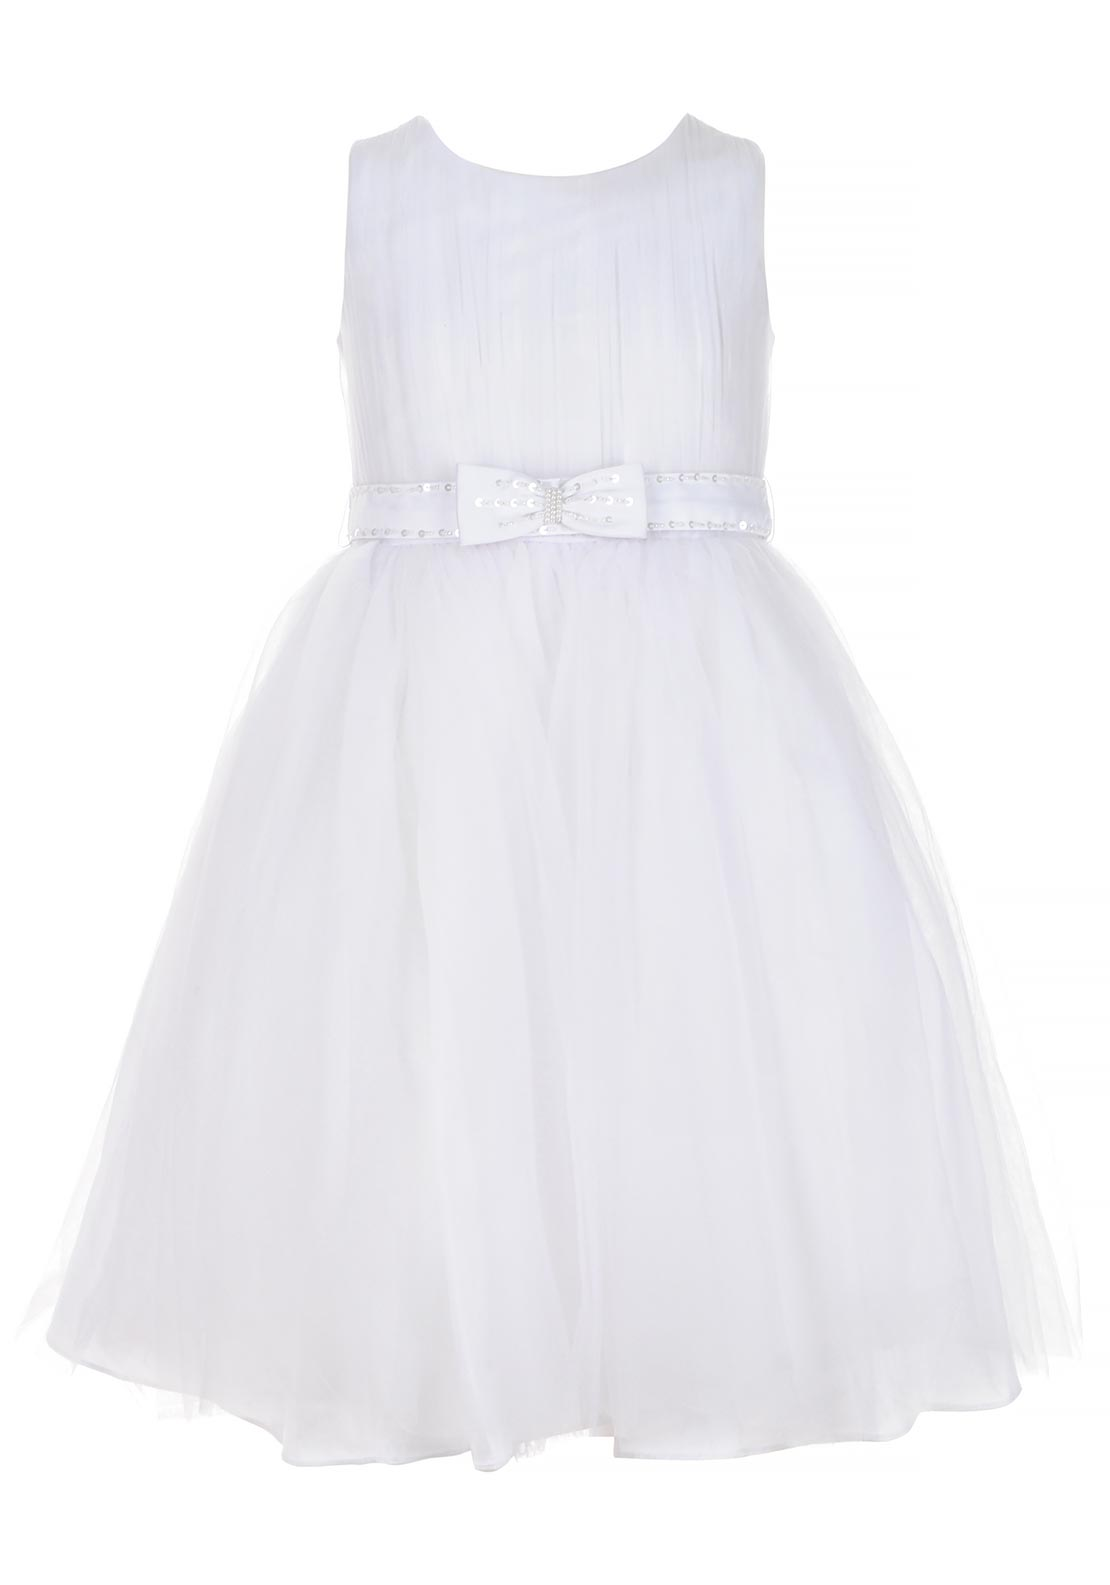 Sevva Girls Cindy Special Occasion Bow Belt Tulle Dress, White